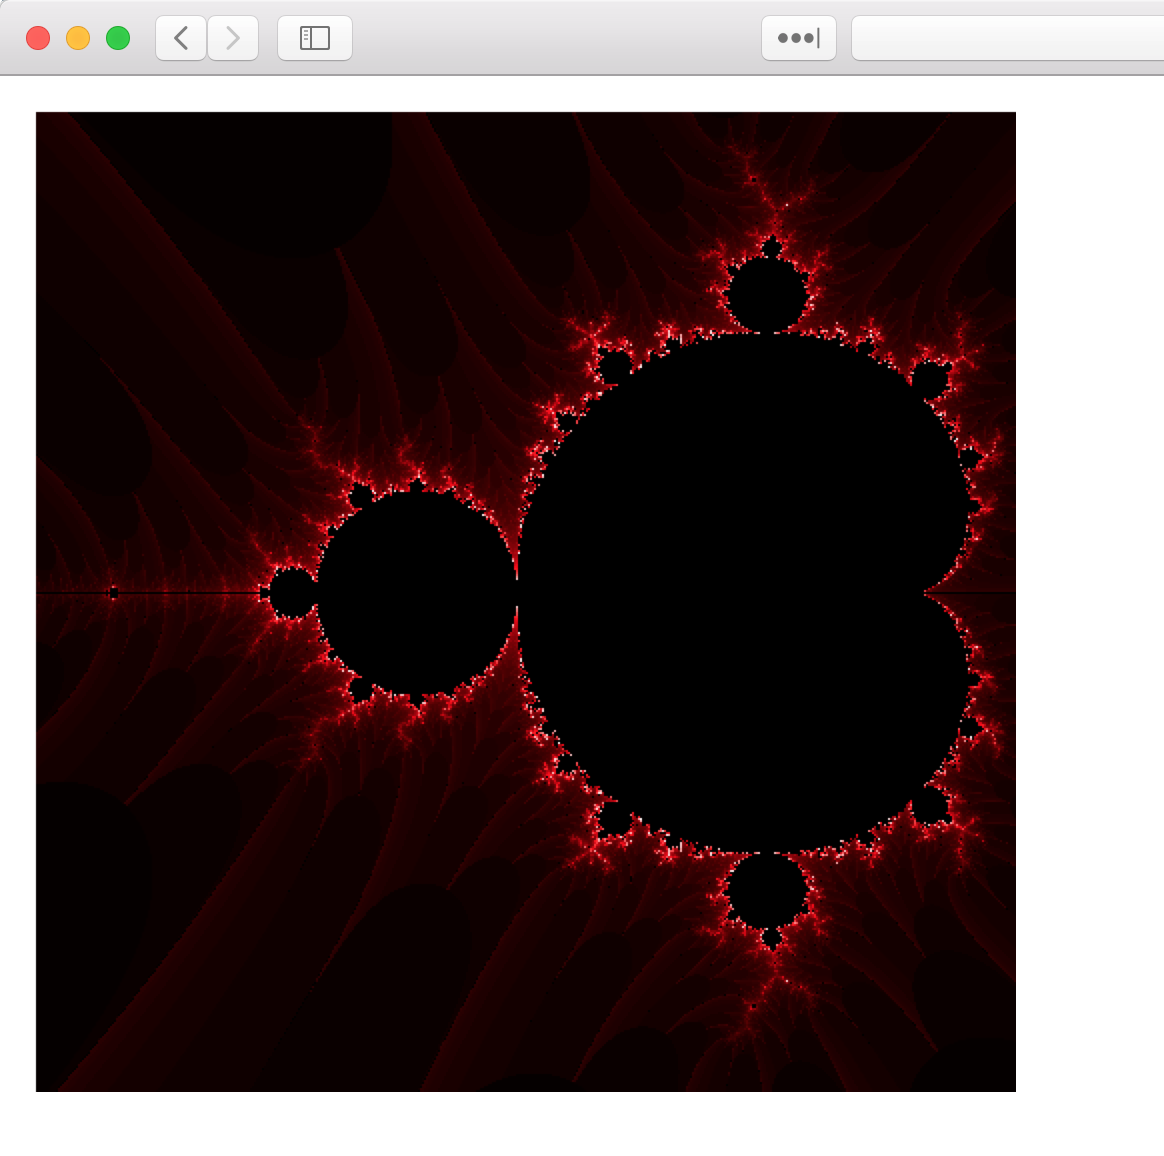 Mandelbrot set fractal draws on the canvas